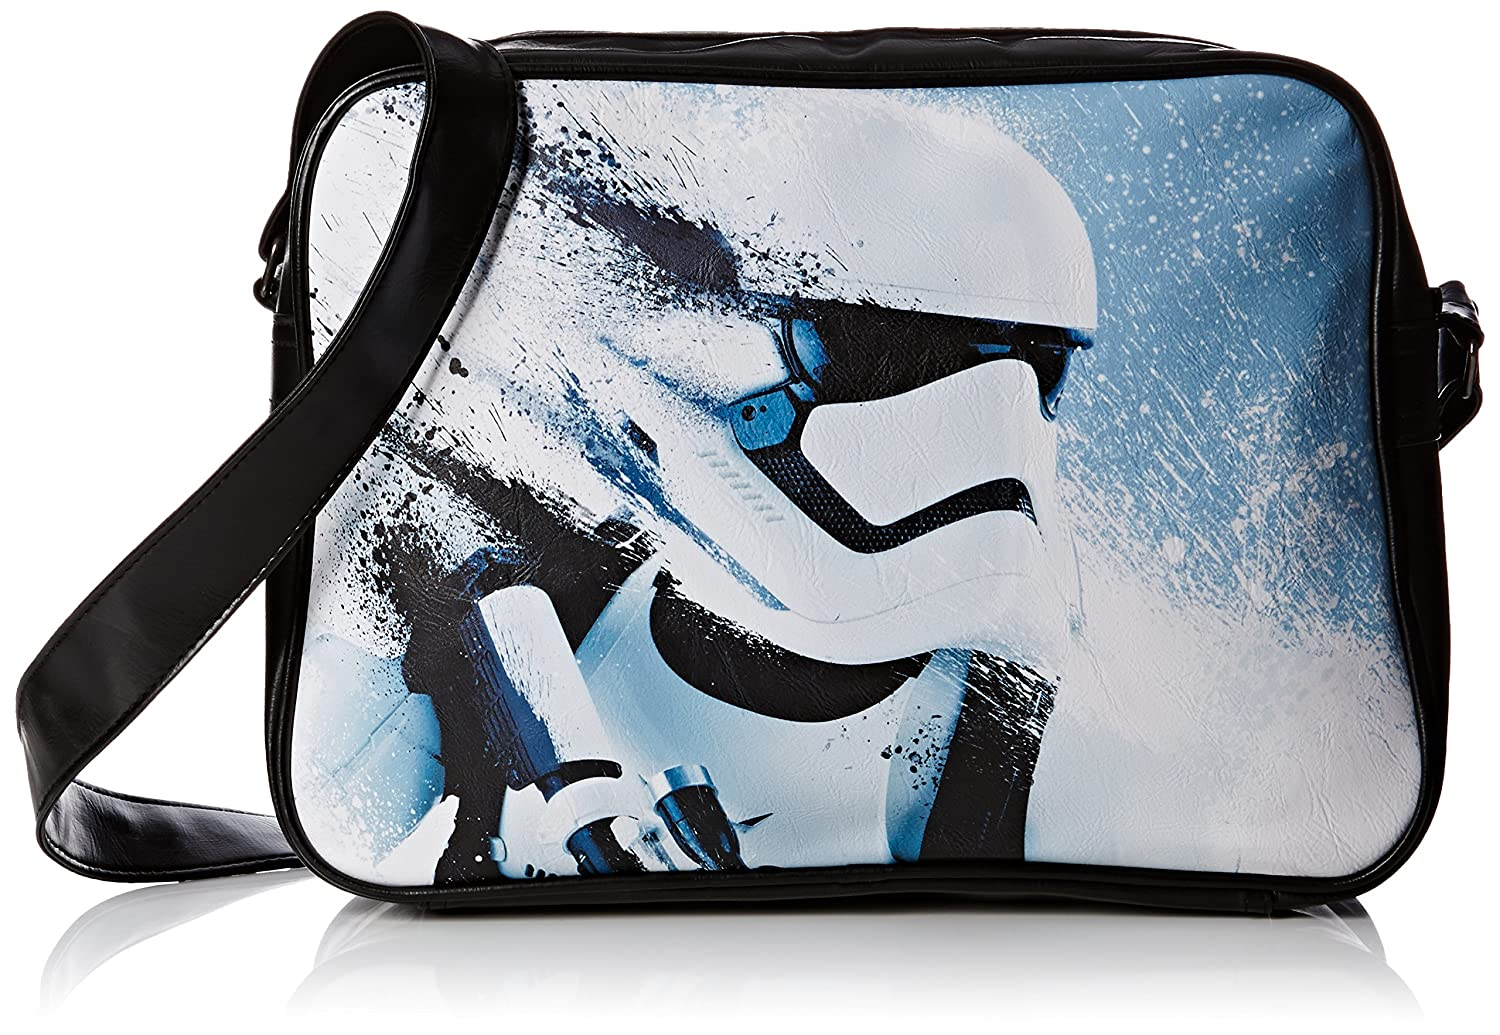 Star Wars VII The Force Awakens Storm Trooper Shoulder Messenger Bag